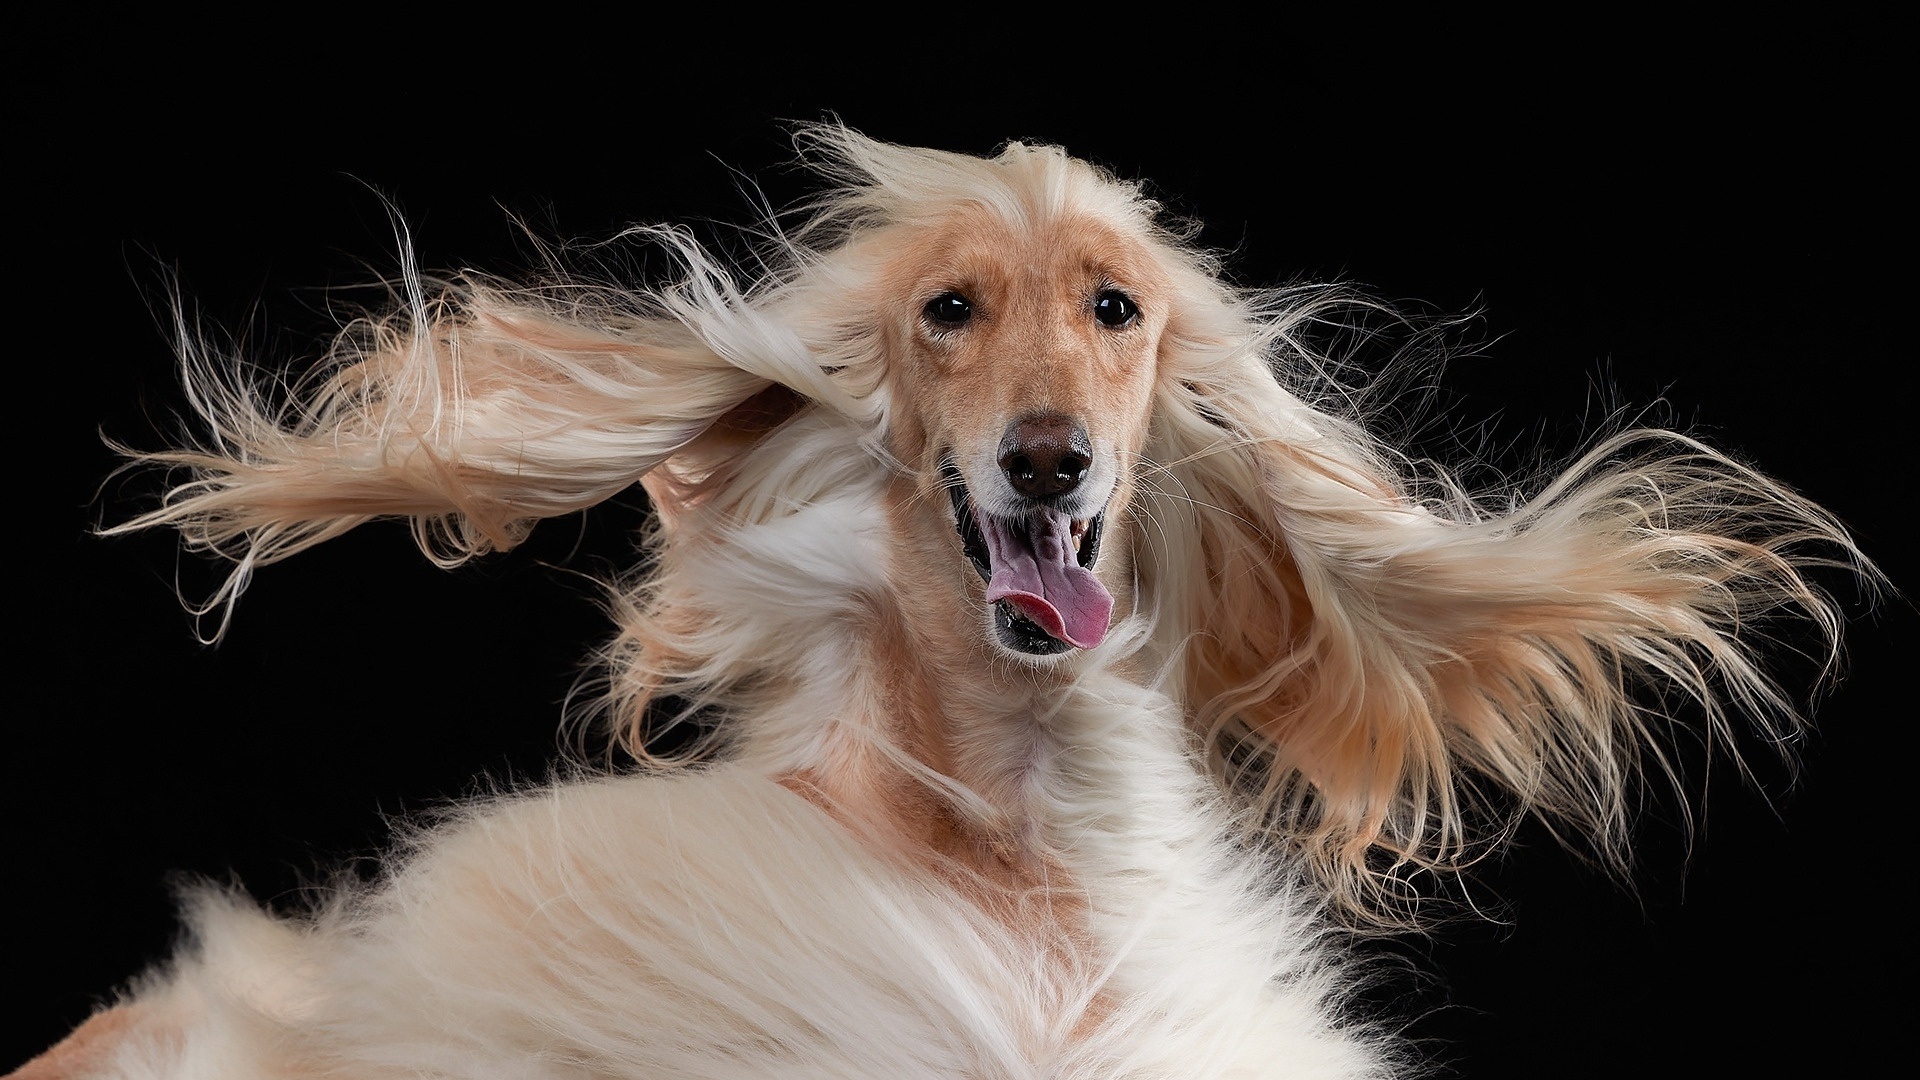 Afghan Hound wallpaper for pc